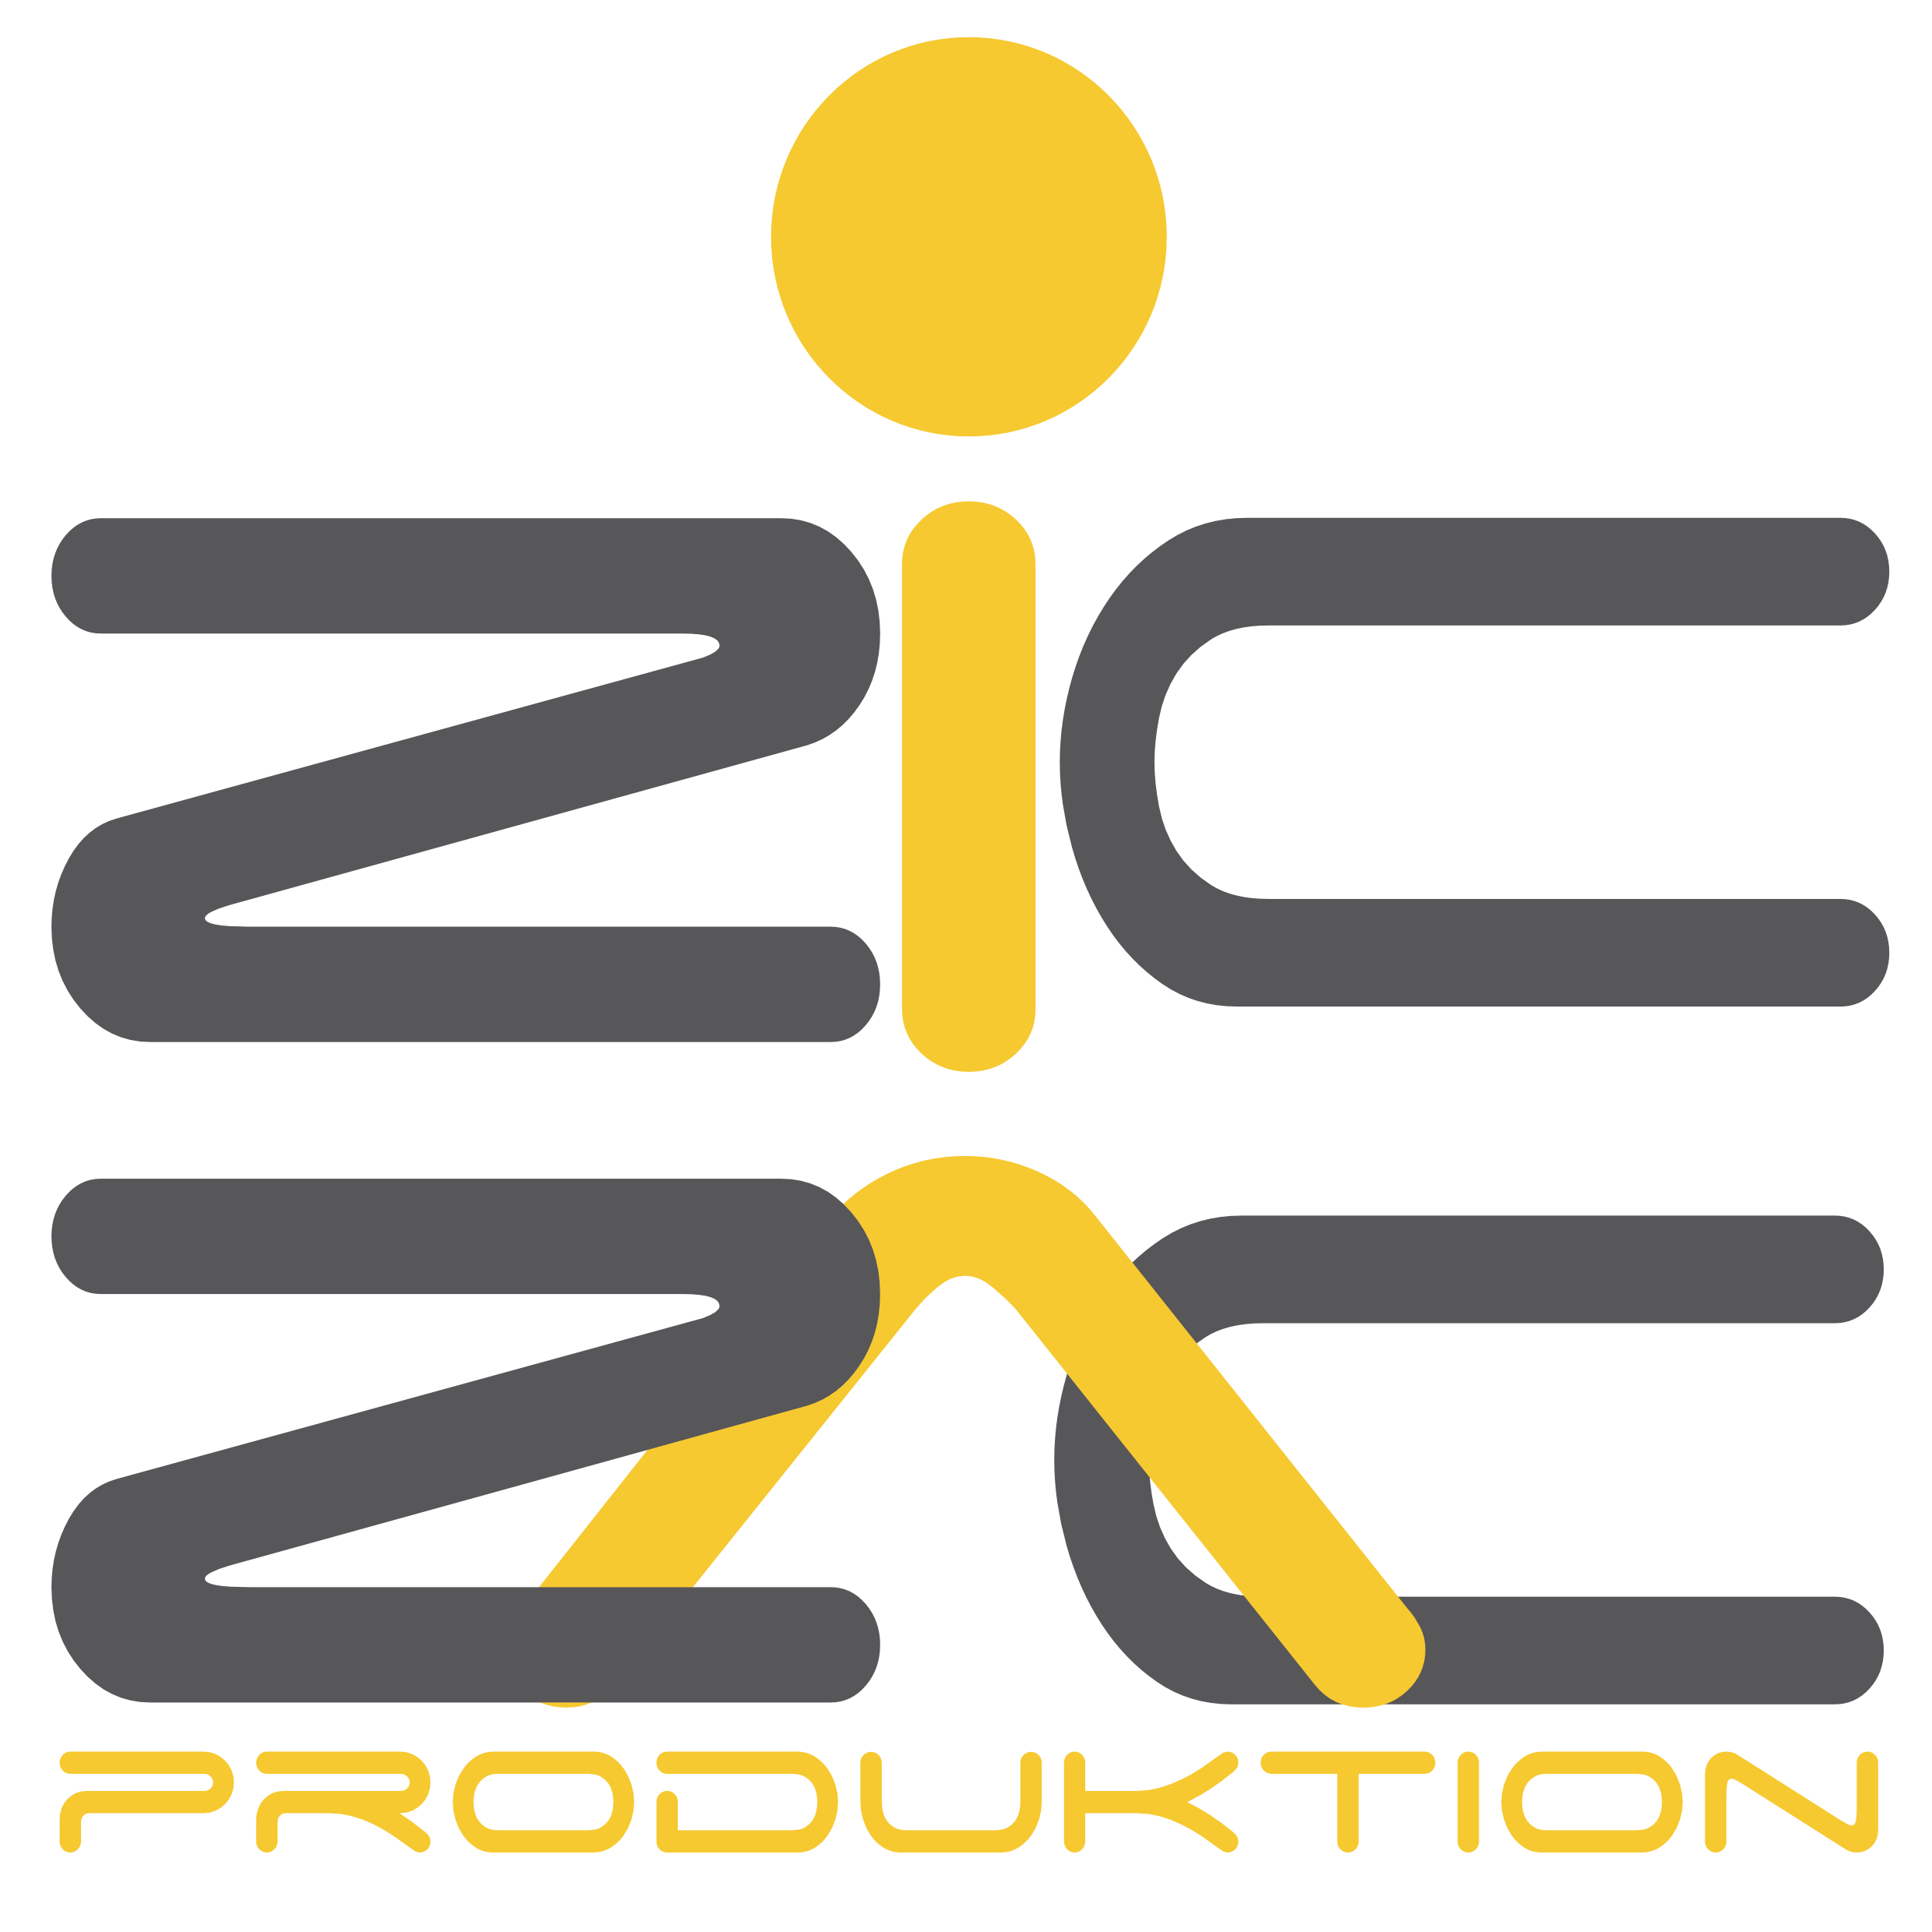 ZicZac Produktion